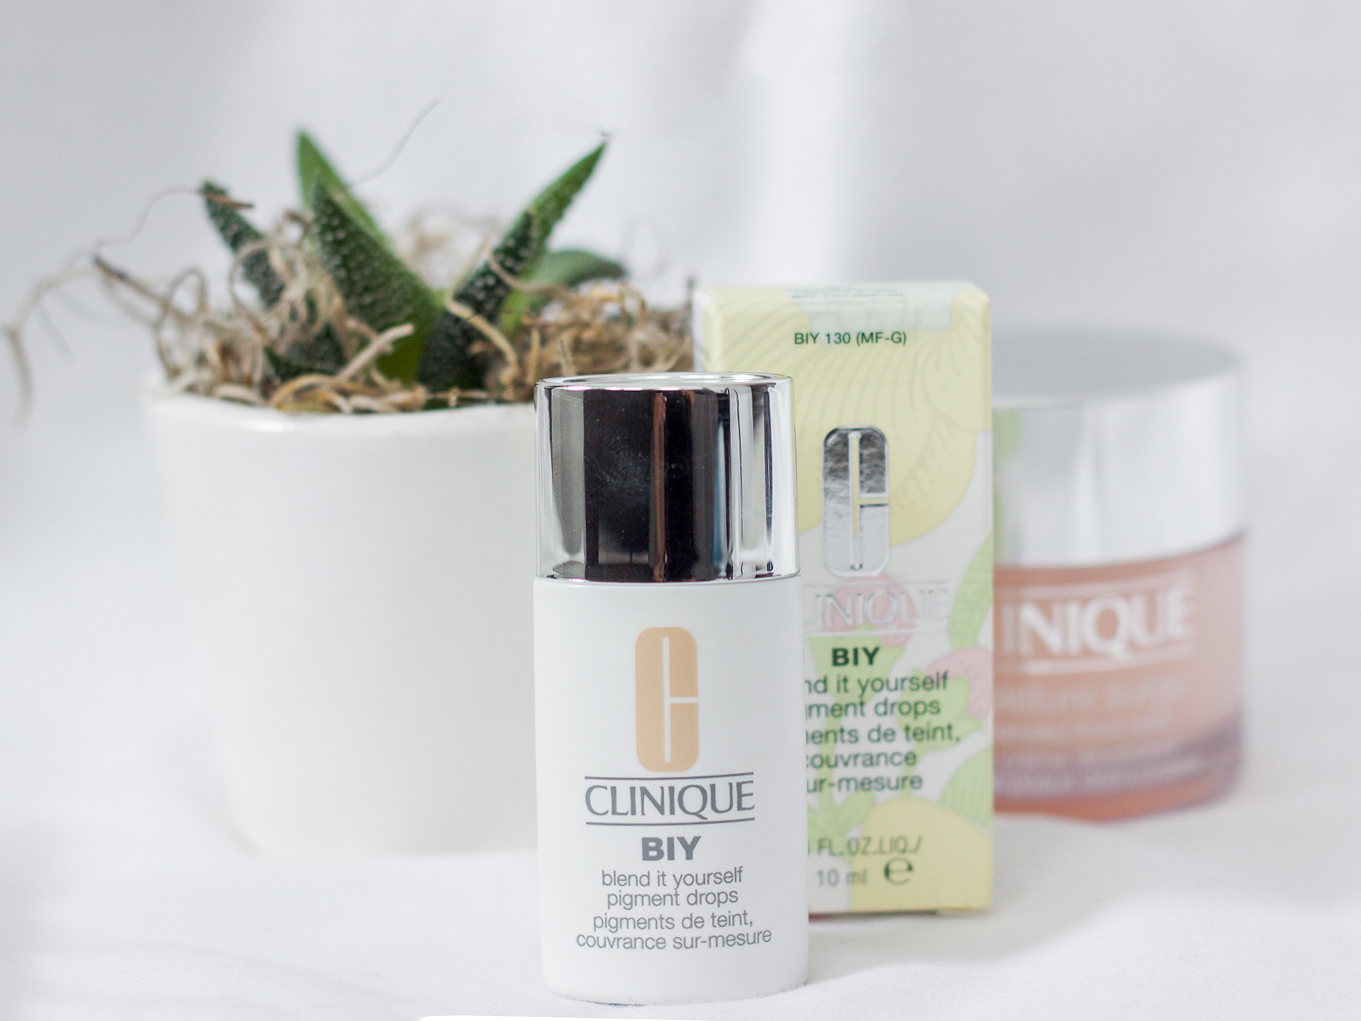 Canadian life and style blogger, Jackie of Something About That is sharing a review and details about the new Clinique BIY Blend It Yourself Pigment Drops